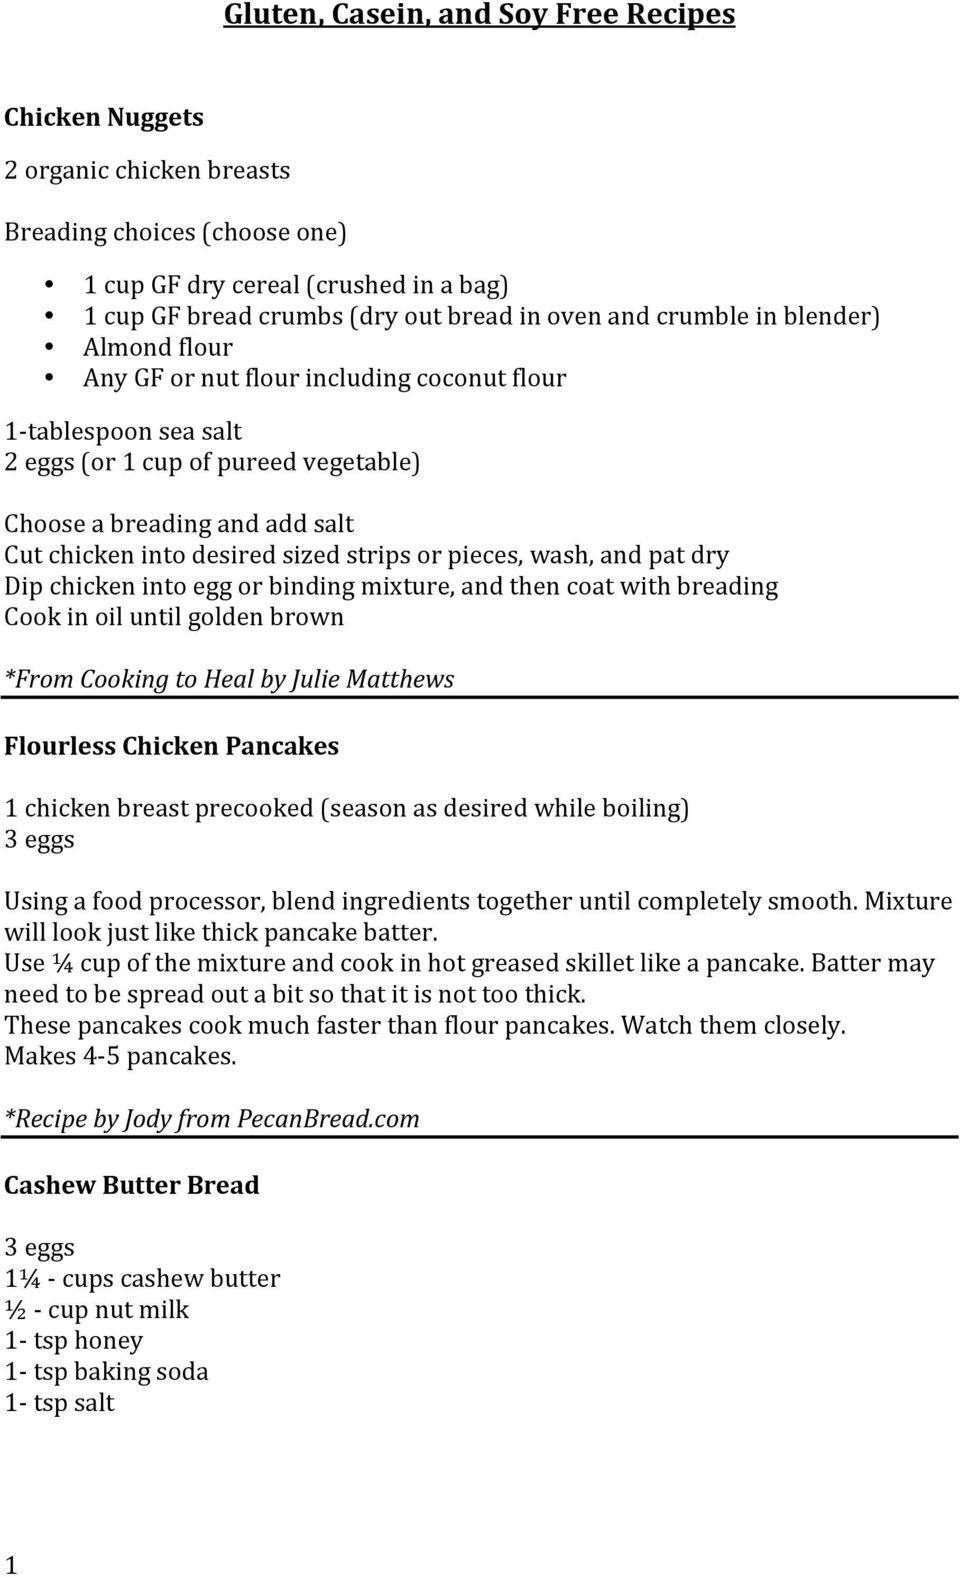 chicken into egg or binding mixture, and then coat with breading Cook in oil until golden brown Flourless Chicken Pancakes 1 chicken breast precooked (season as desired while boiling) 3 eggs Using a